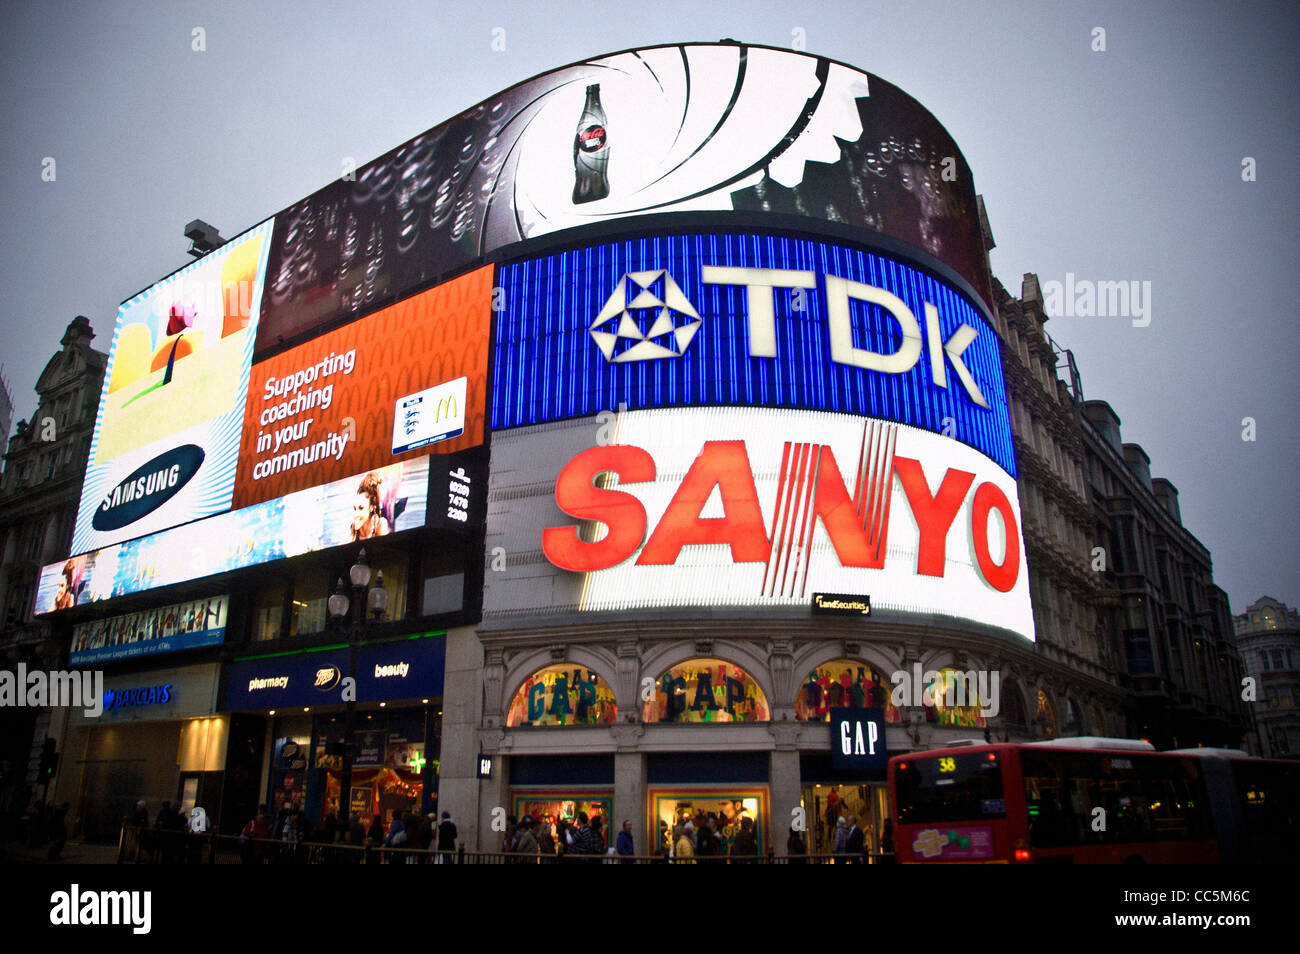 Illuminated neon advertising signs at Piccadilly Circus, London. - Stock Image